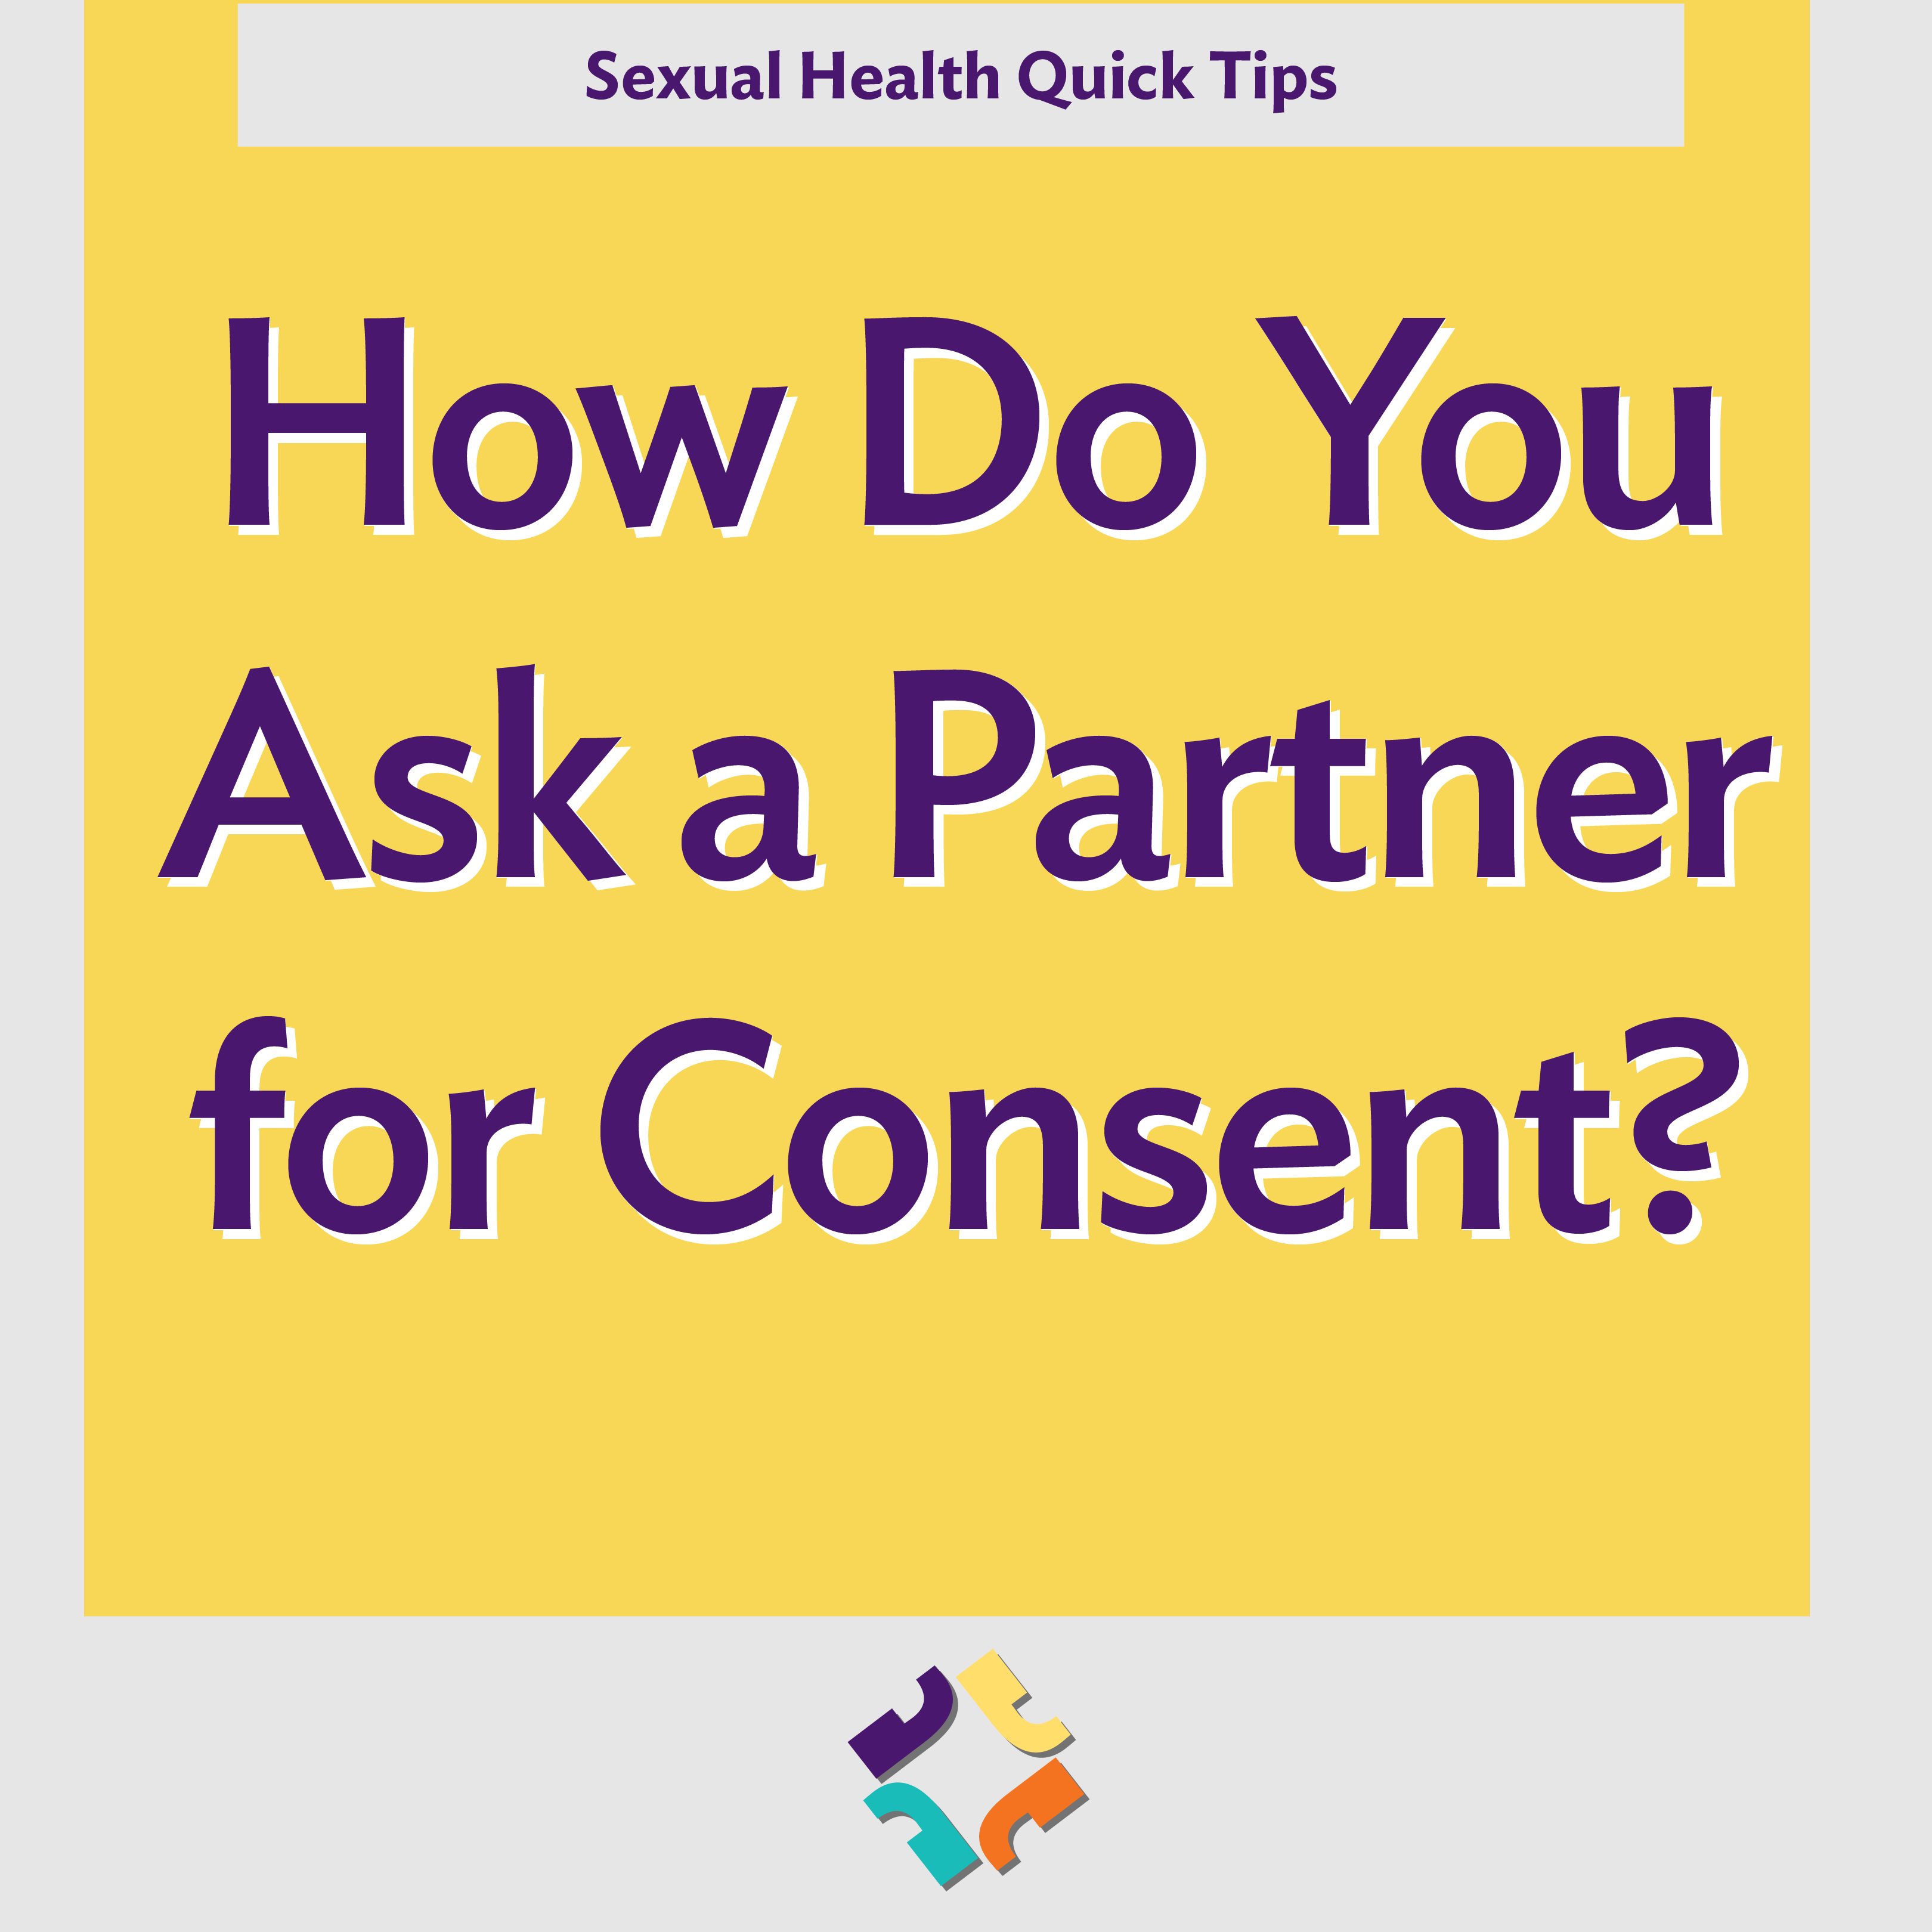 How Do You Ask a Partner for Consent